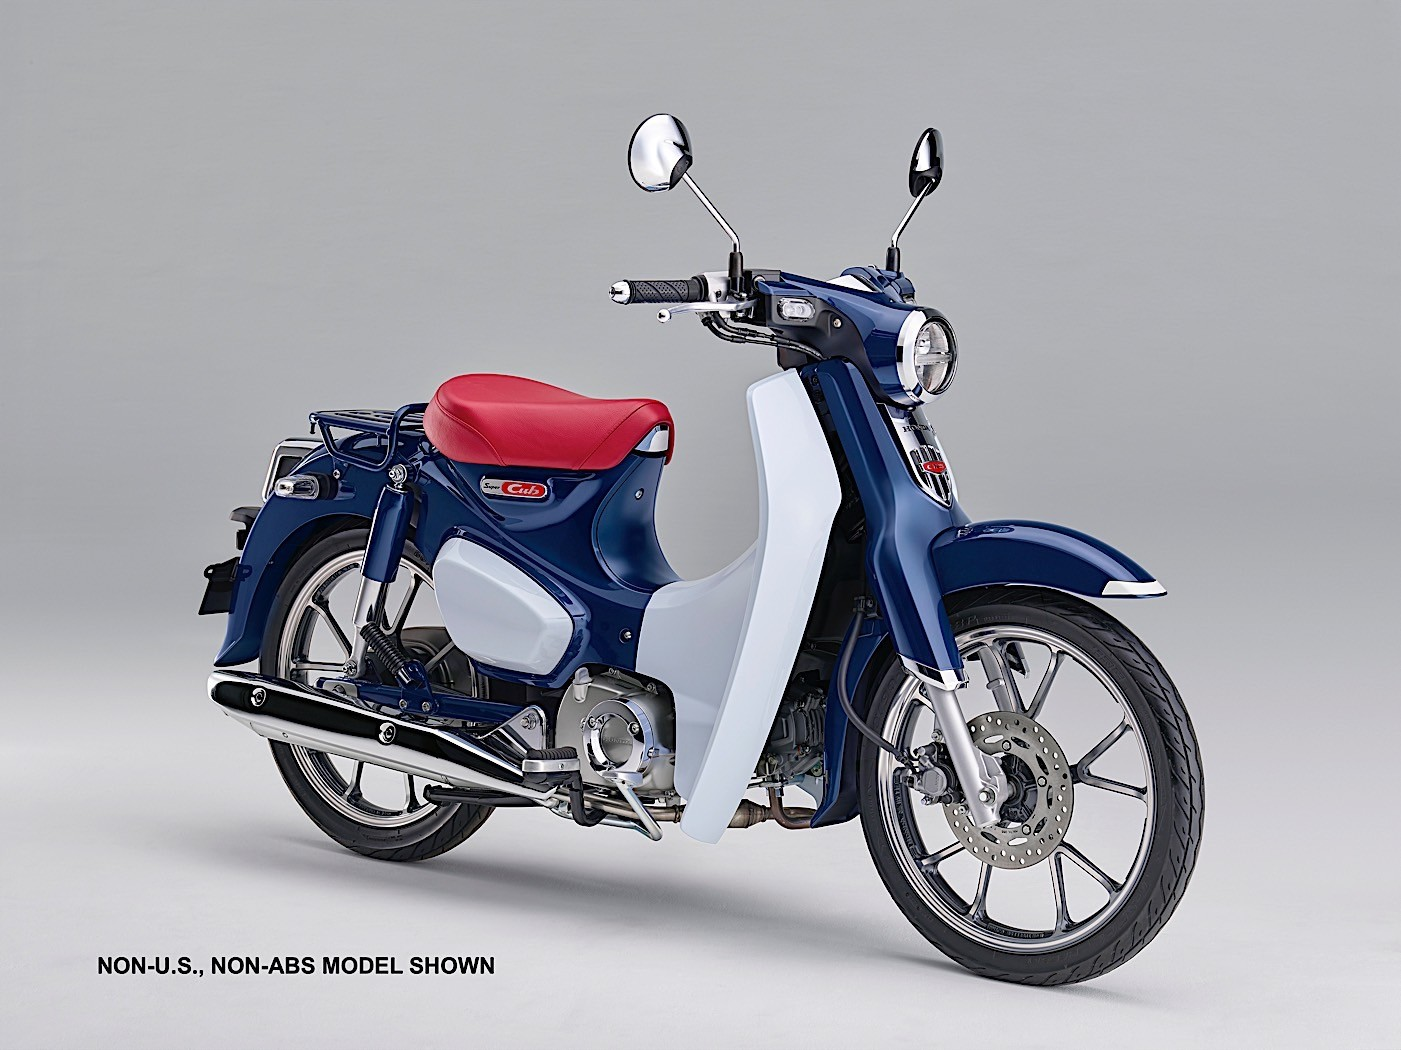 2019 Honda Monkey Super Cub Come To The U S Autoevolution